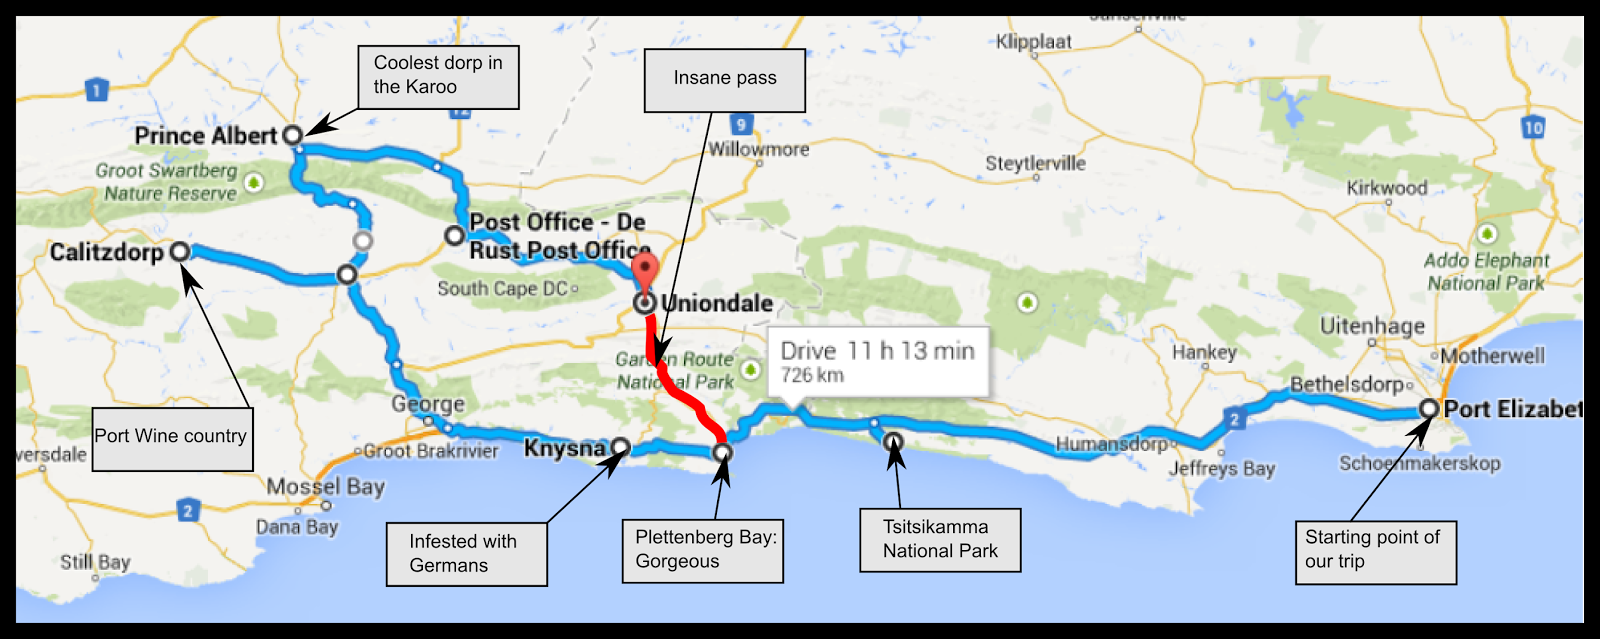 the third leg of our trip took us from knysna to calitzdorp with several stops along the way notably this drive took us through the oteniqua mountains